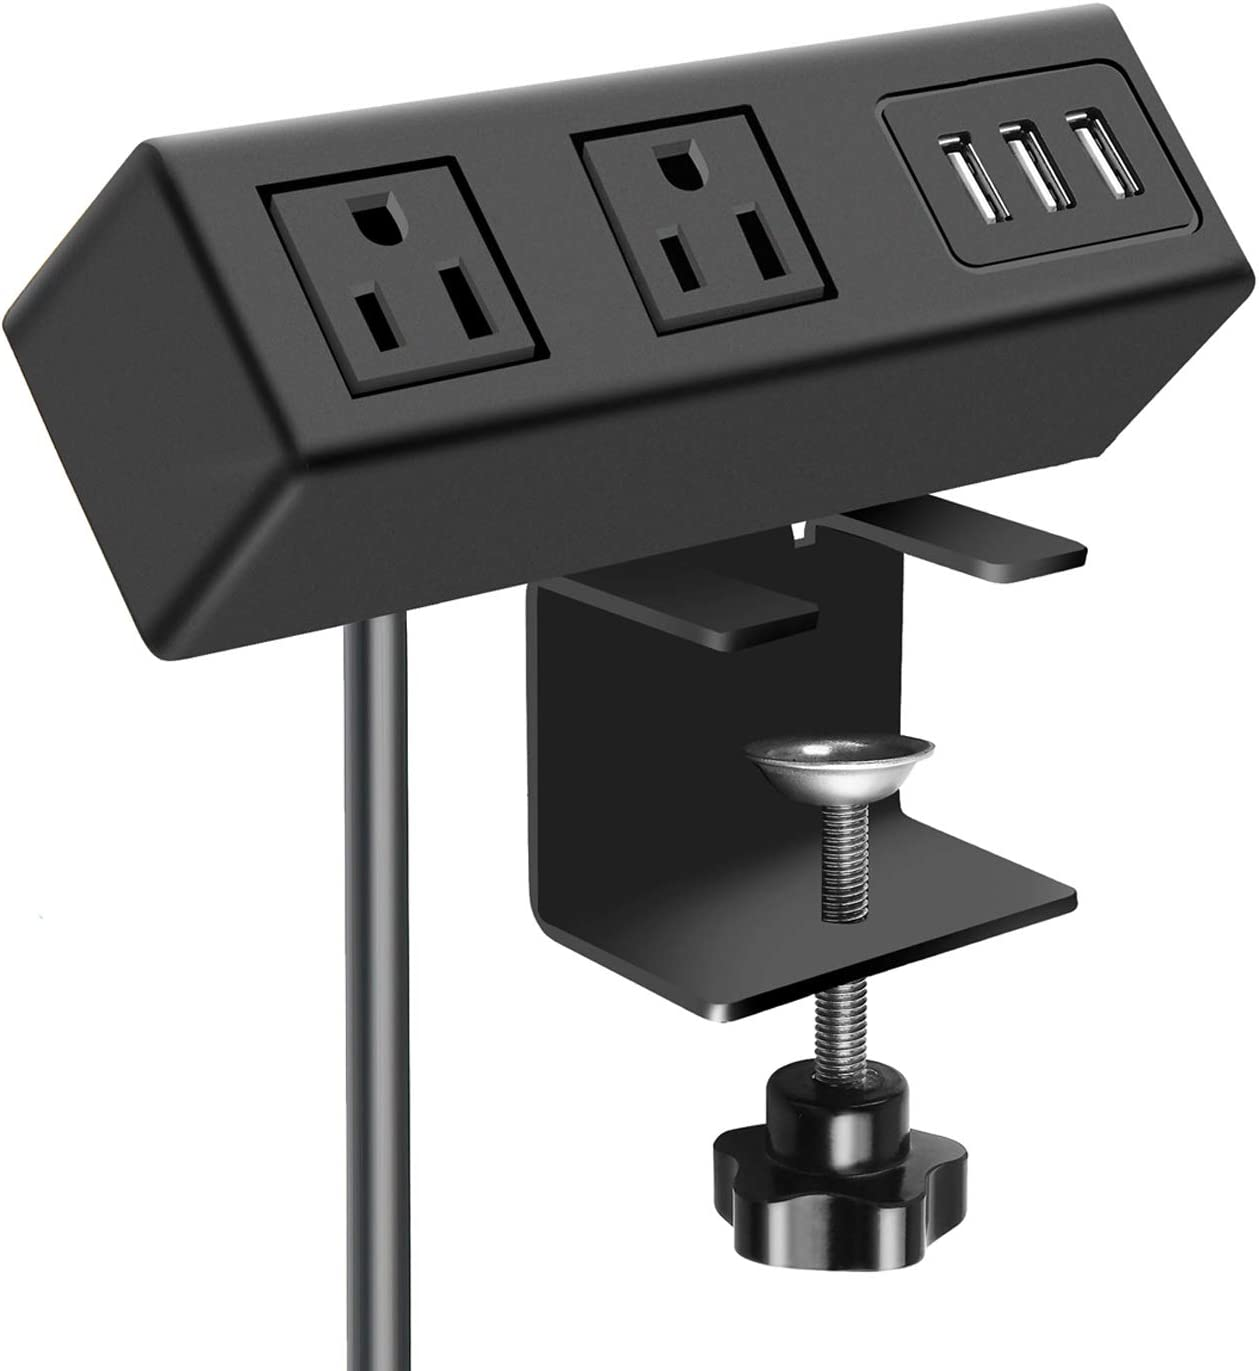 2 AC Outlet Desk Clamp Power Strip, Desk Mount USB Charging Power Station, Removable Desktop Power Center Plugs Output 125V/60HZ/12A/1500W, USB 5V/3A 6.56FT Cable